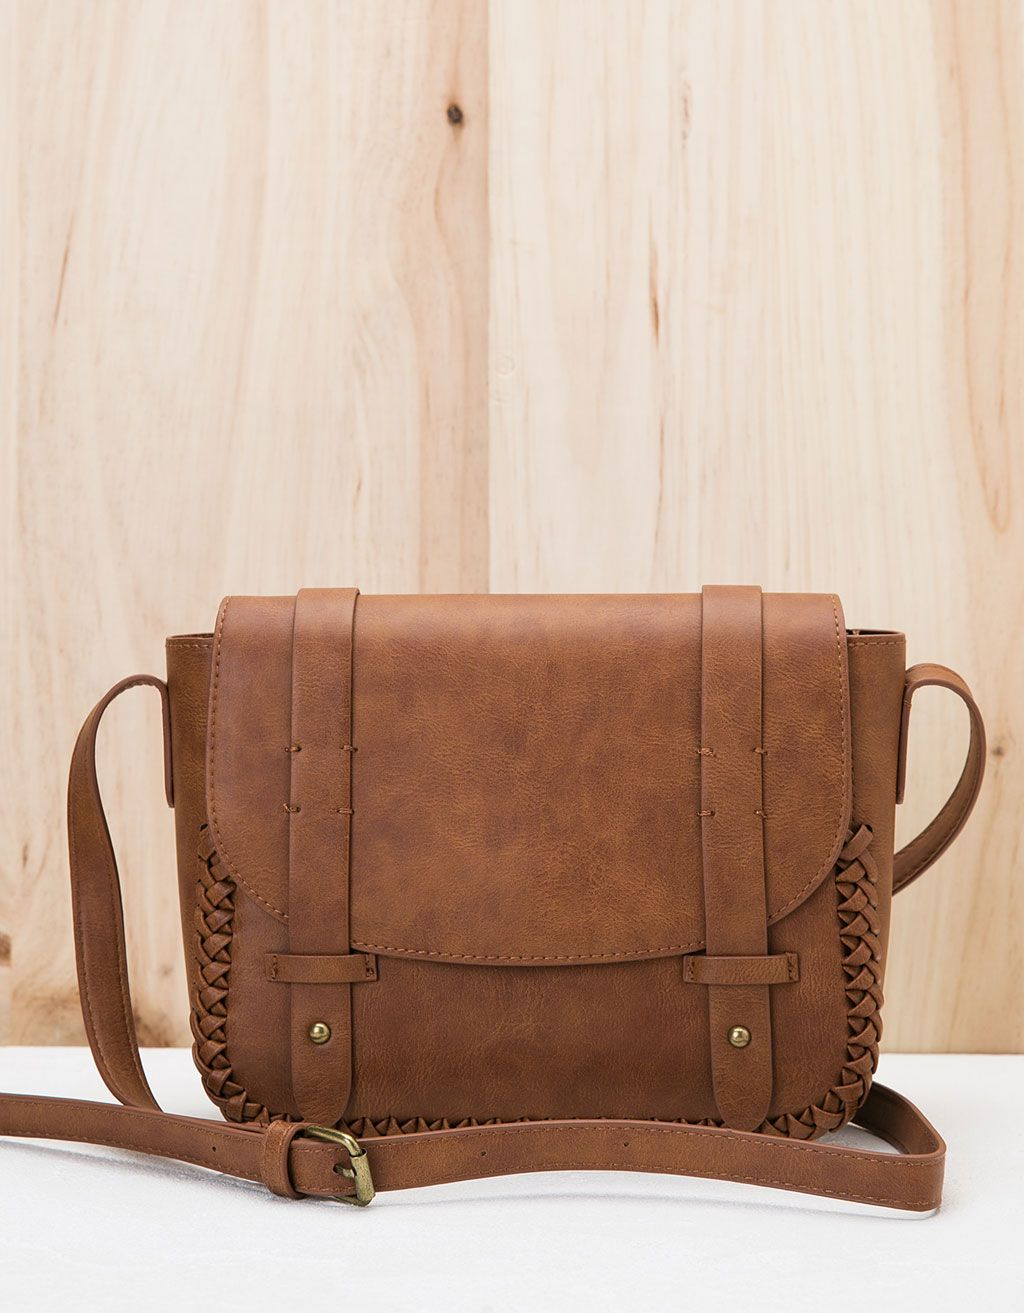 05149ad0348 BSK braided college bag. Discover this and many more items in Bershka with  new products every week